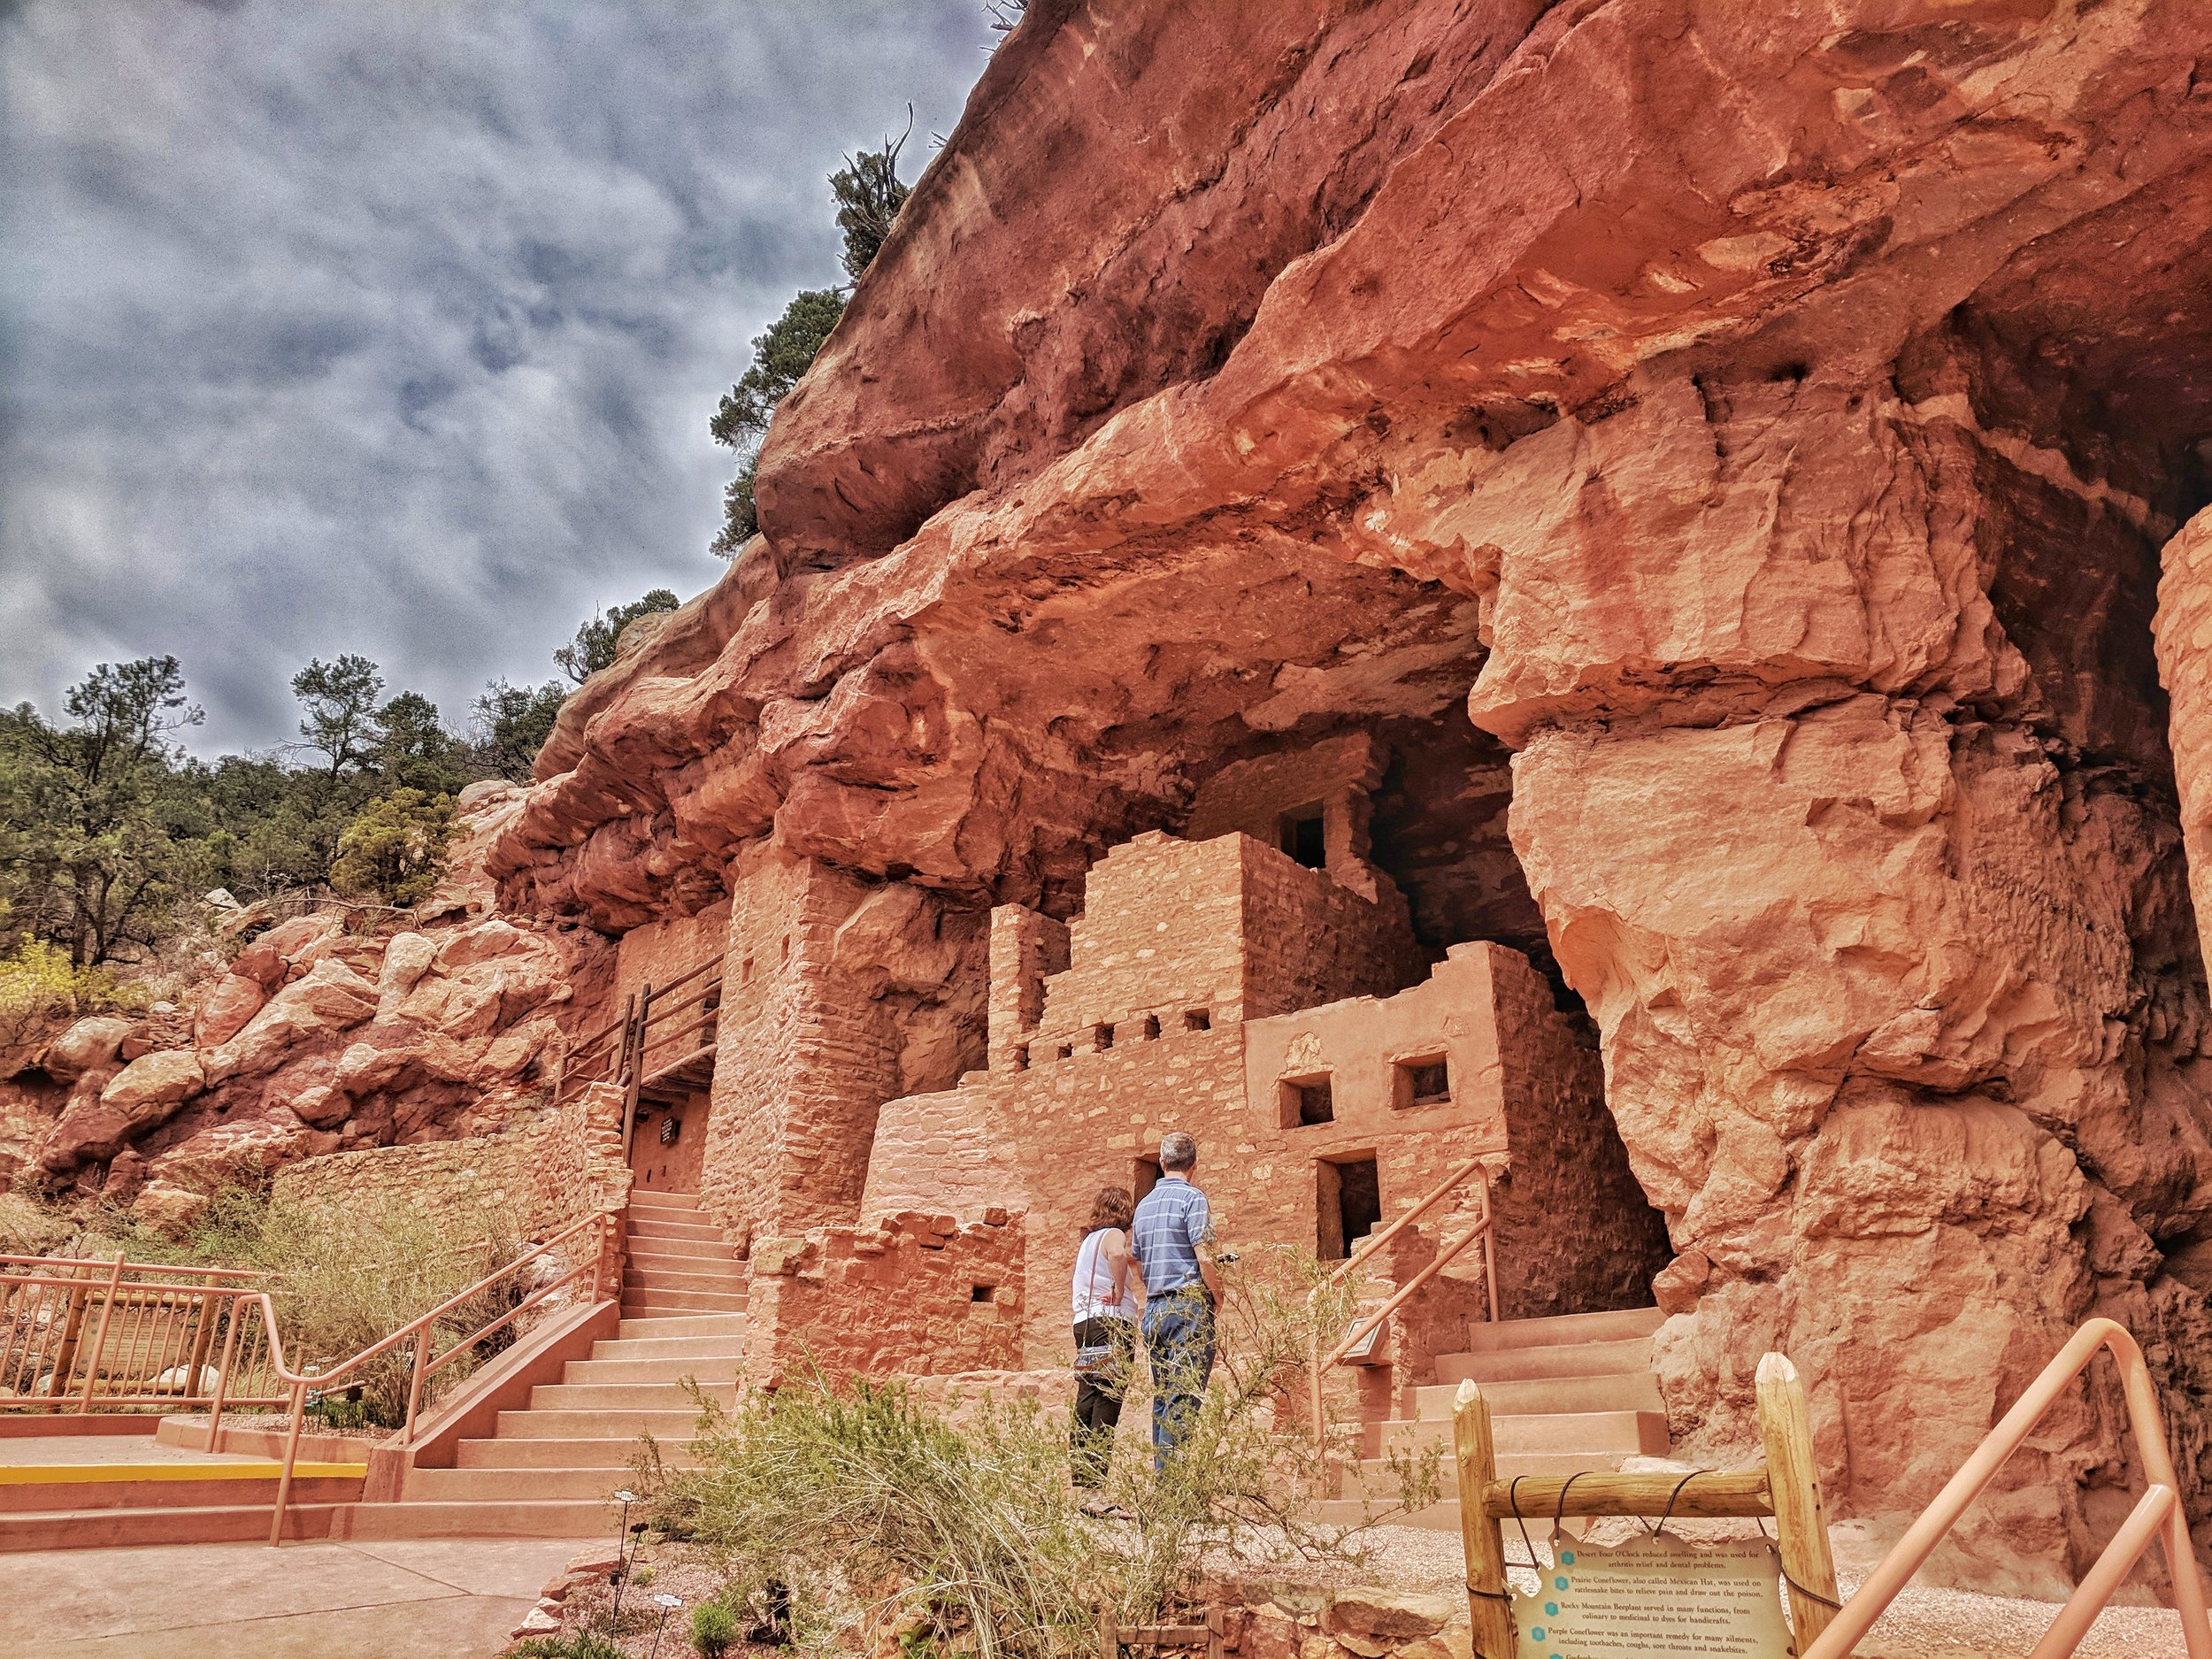 I did manage to get out of bed on one of the last days and check out some awesome ancient cliff-dwellings in town.